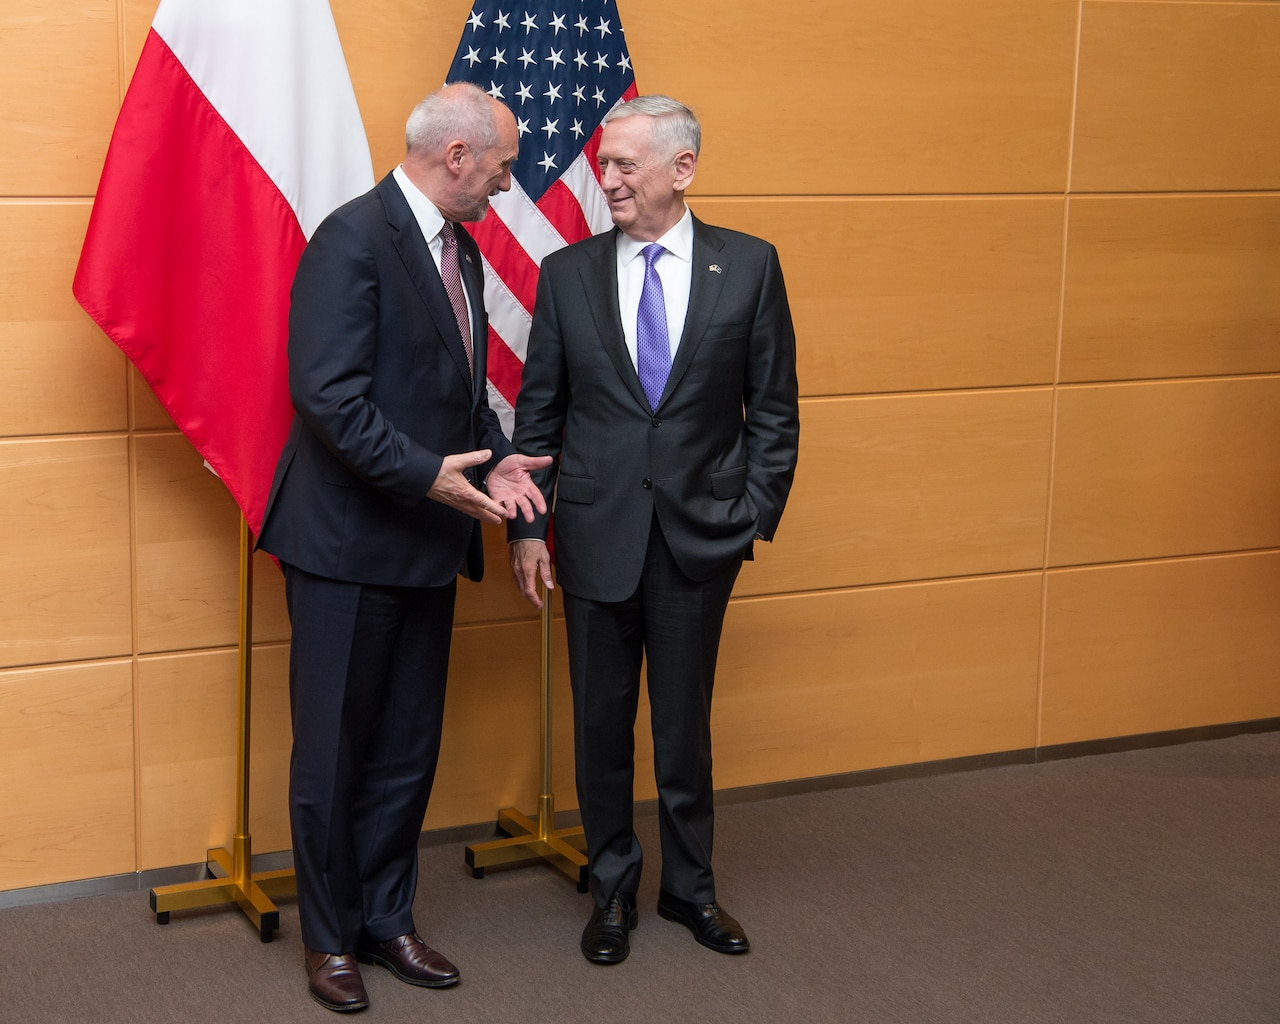 Defense Secretary Jim Mattis, right, meets with Polish Defense Minister Antoni Macierewicz at NATO headquarters in Brussels, June 29, 2017. DoD photo by Air Force Staff Sgt. Jette Carr